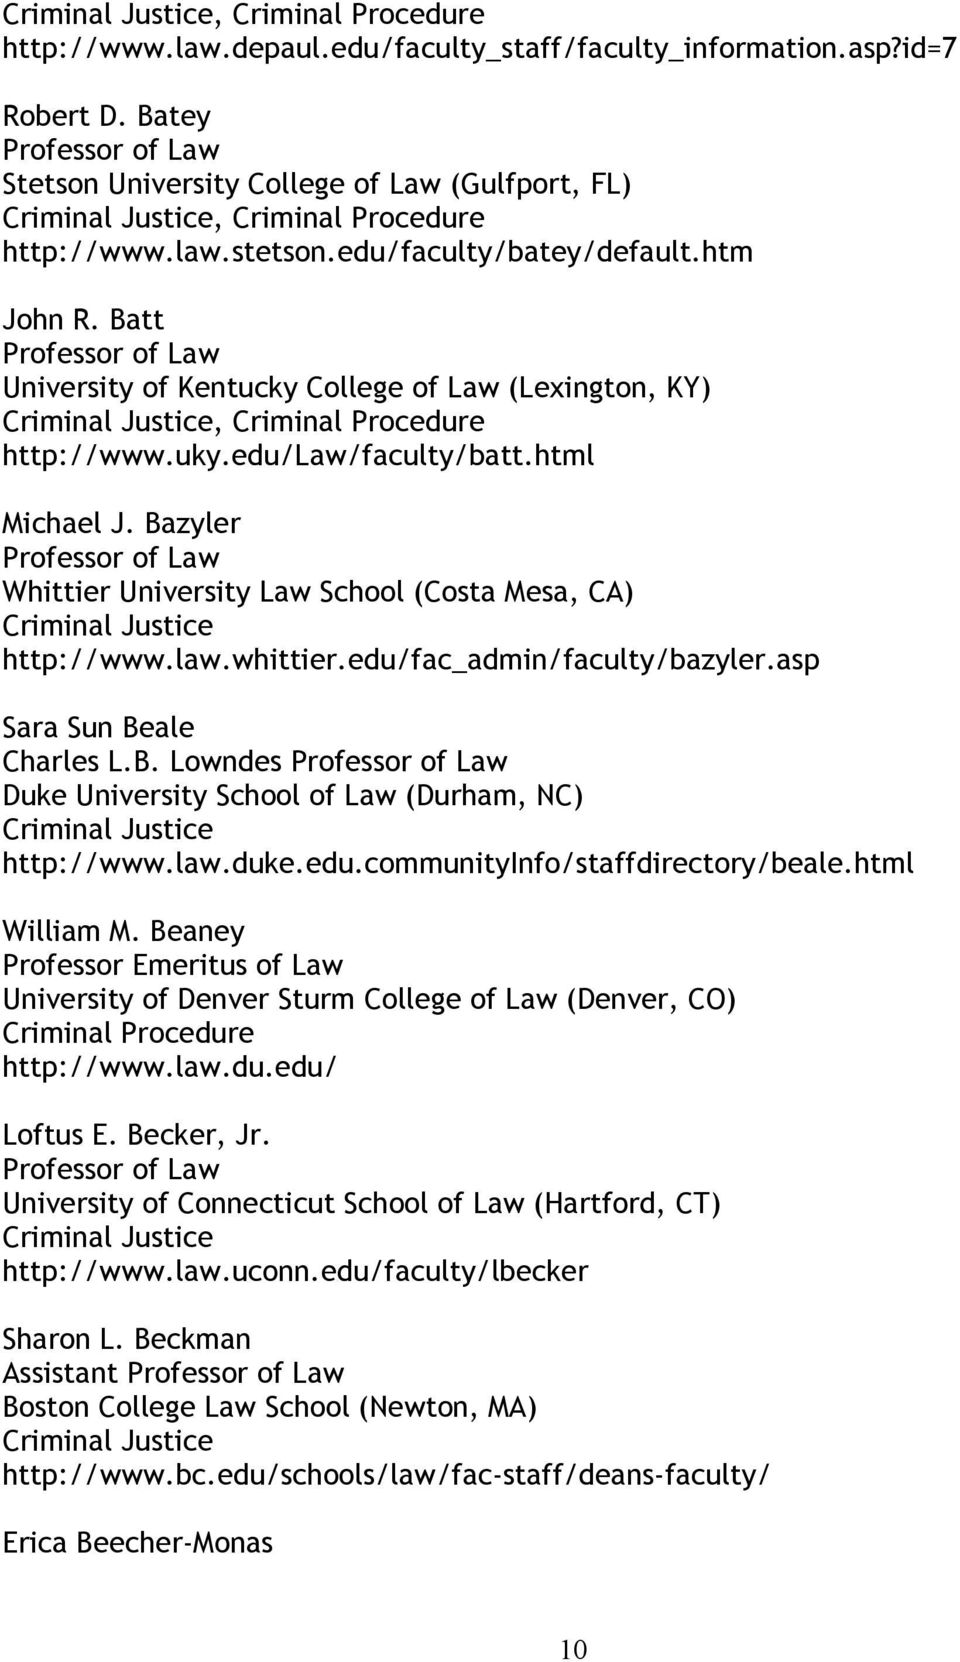 edu/fac_admin/faculty/bazyler.asp Sara Sun Beale Charles L.B. Lowndes Duke University School of Law (Durham, NC) http://www.law.duke.edu.communityinfo/staffdirectory/beale.html William M.